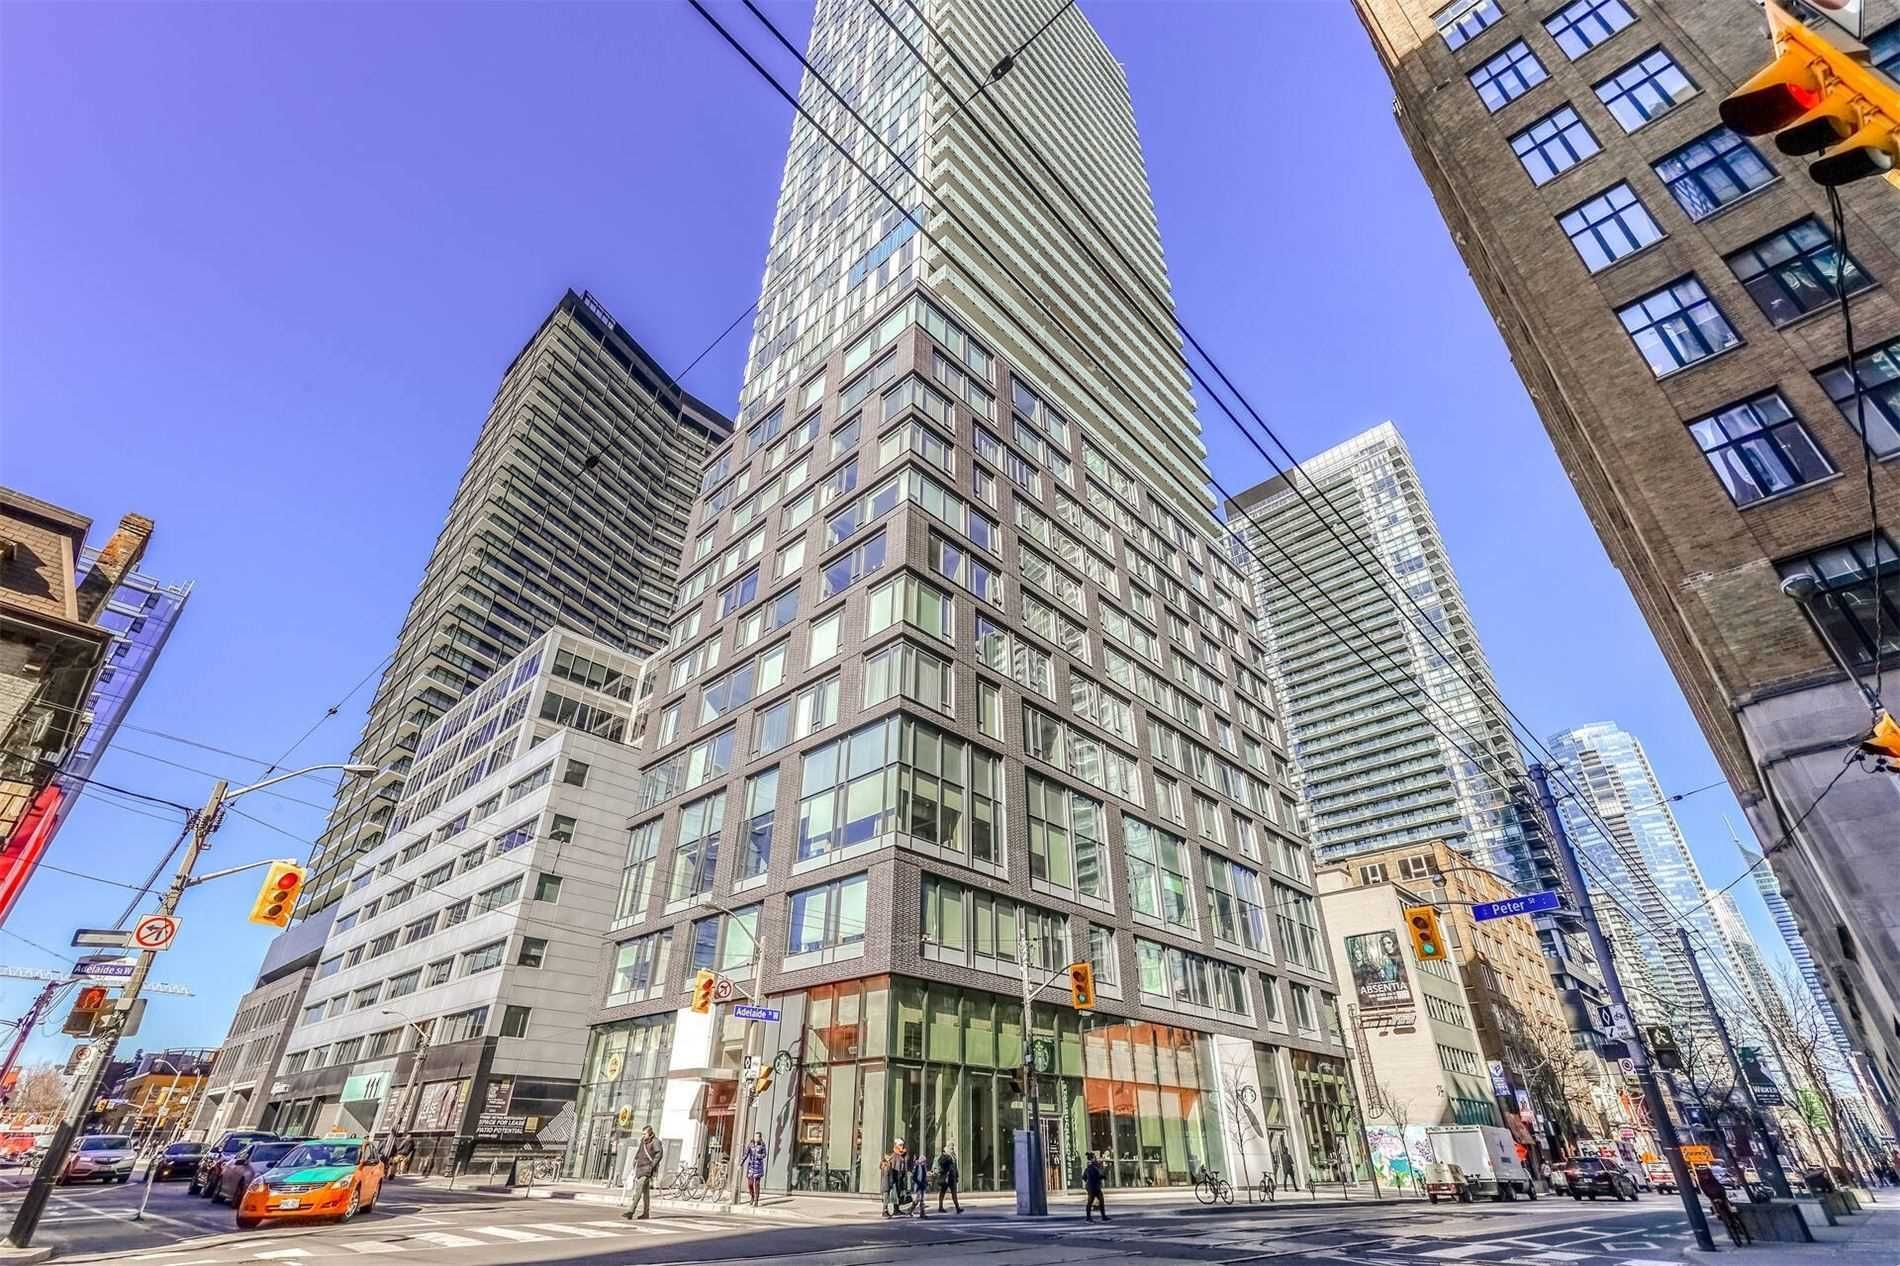 101 Peter St, unit 1912 for sale in Toronto - image #1